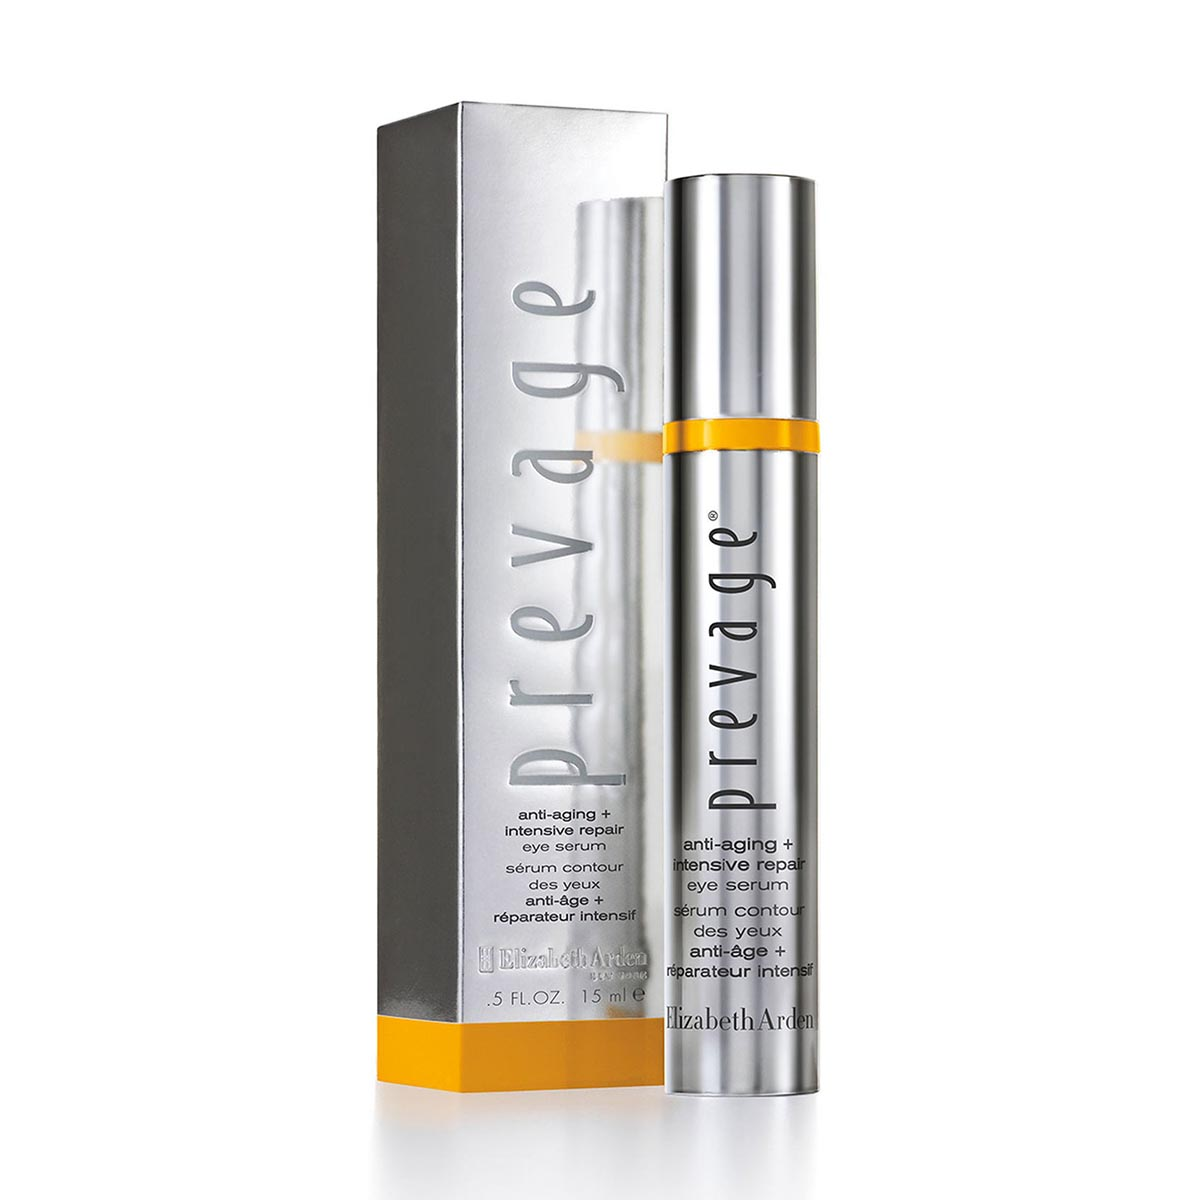 Elizabeth arden prevage eye advanced anti aging intensive repair 15ml